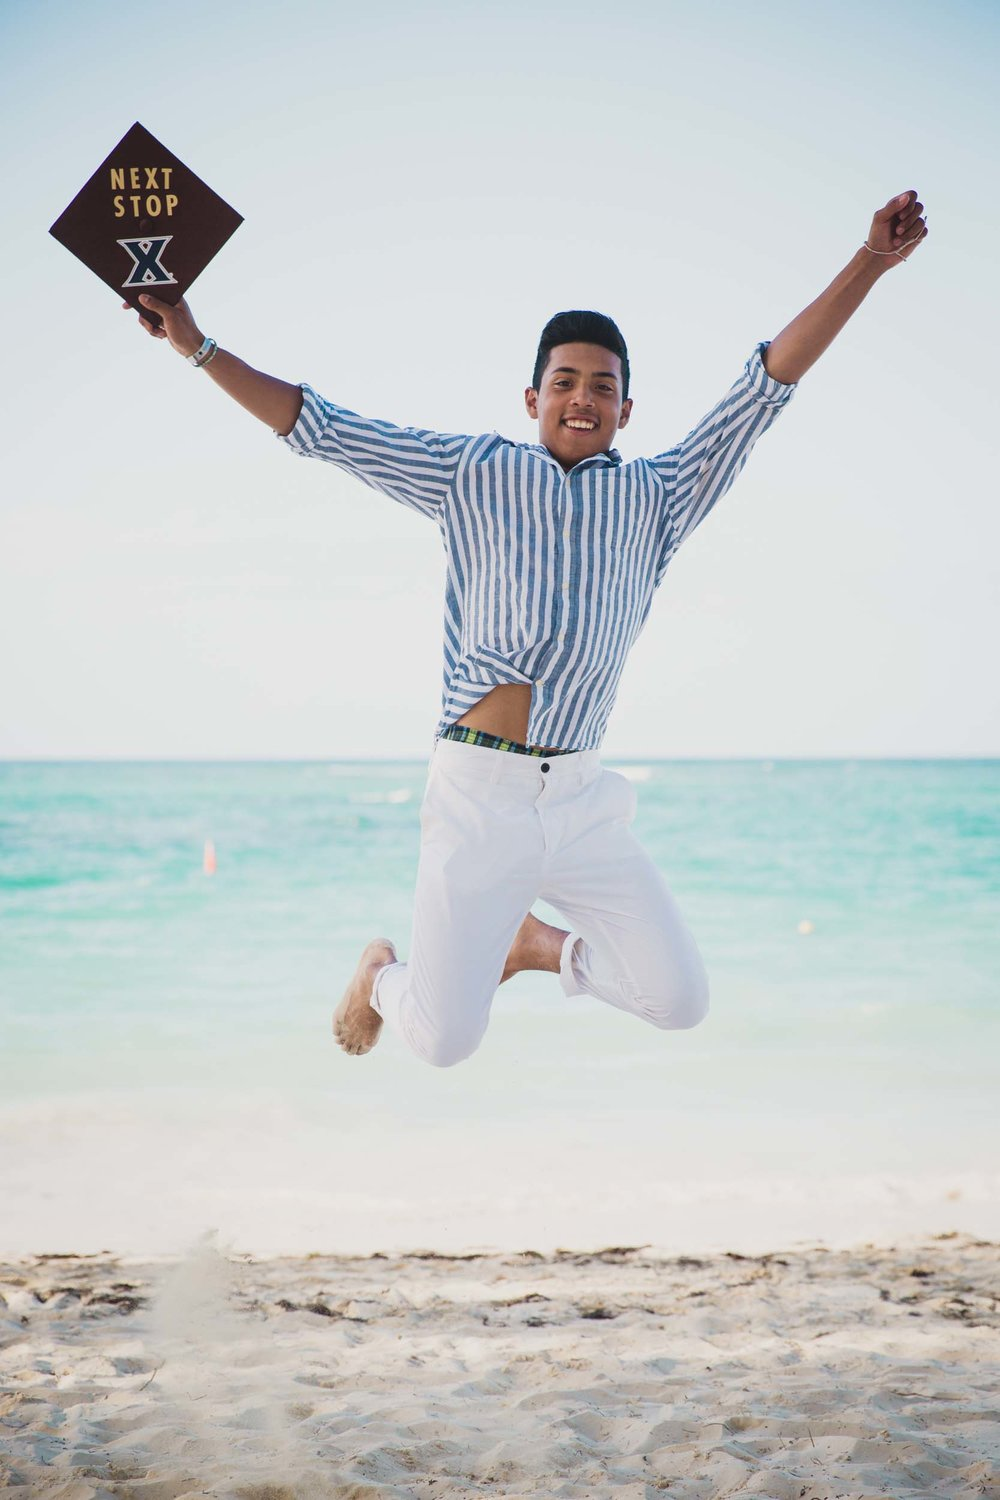 Click to see photos of this mother-son duo celebrating both of their graduations in Punta Cana on the Flytographer blog! | Travel + Vacation Photographer | Family Vacations | Engagement Proposals | Honeymoons | Anniversary Gifts | Bachelorette Ideas | Solo Traveller Tips |  Flytographer captures your travel memories - everything from surprise proposals, honeymoons, family vacations, and more. So often you are missing out of your own photos! Flytographer solves that problem for you. Our photographers also act as informal tour guides and provide fun local tips to our customers, showing them an area of a city they may not have explored without Flytographer. Book your photographer at 1.888.211.7178 or visit our website at www.flytographer.com/book